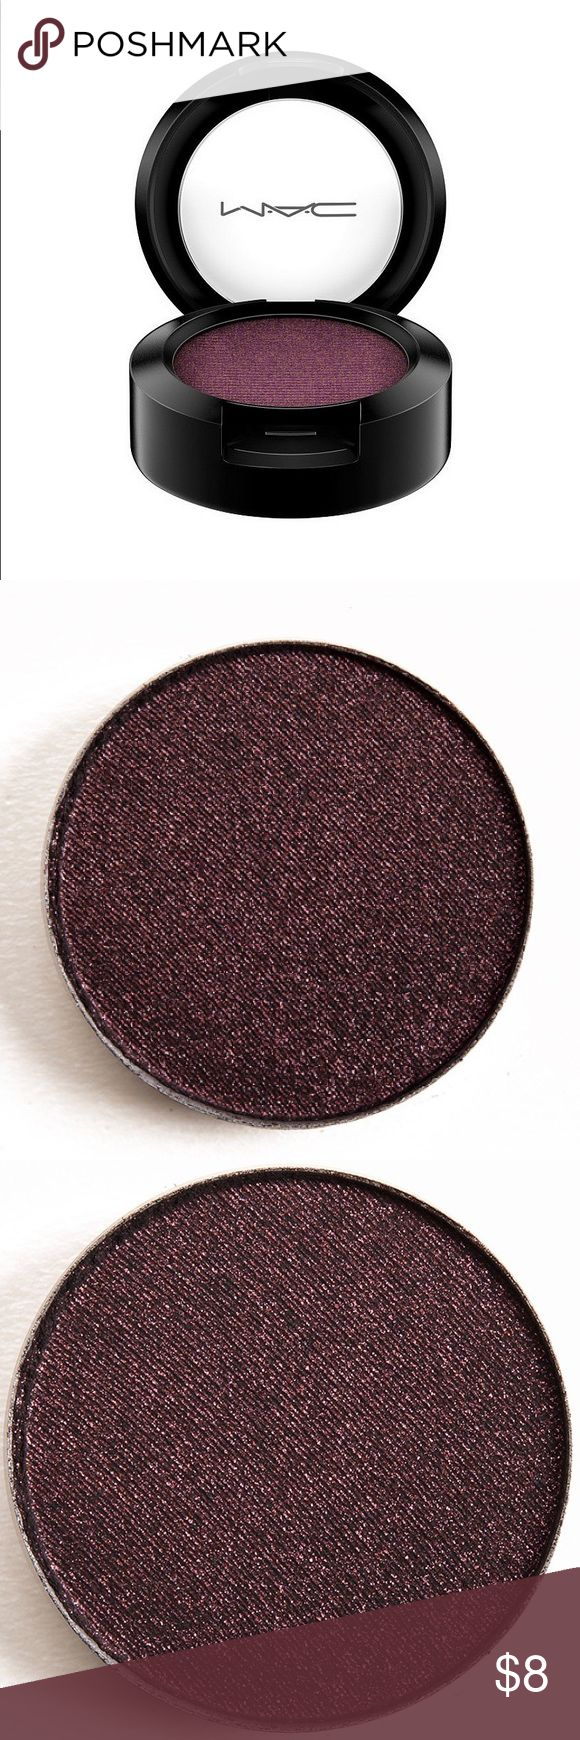 MAC Beauty Marked Eyeshadow MAC Beauty Marked Eyeshadow is described as a black-red sparkle pearl with a velvet finish.   It's a blackened-burgundy with flecks of plum and ruby sparkle and shimmer.  Only swatched once. You can't even really tell that it's been touched at all. MAC Cosmetics Makeup Eyeshadow